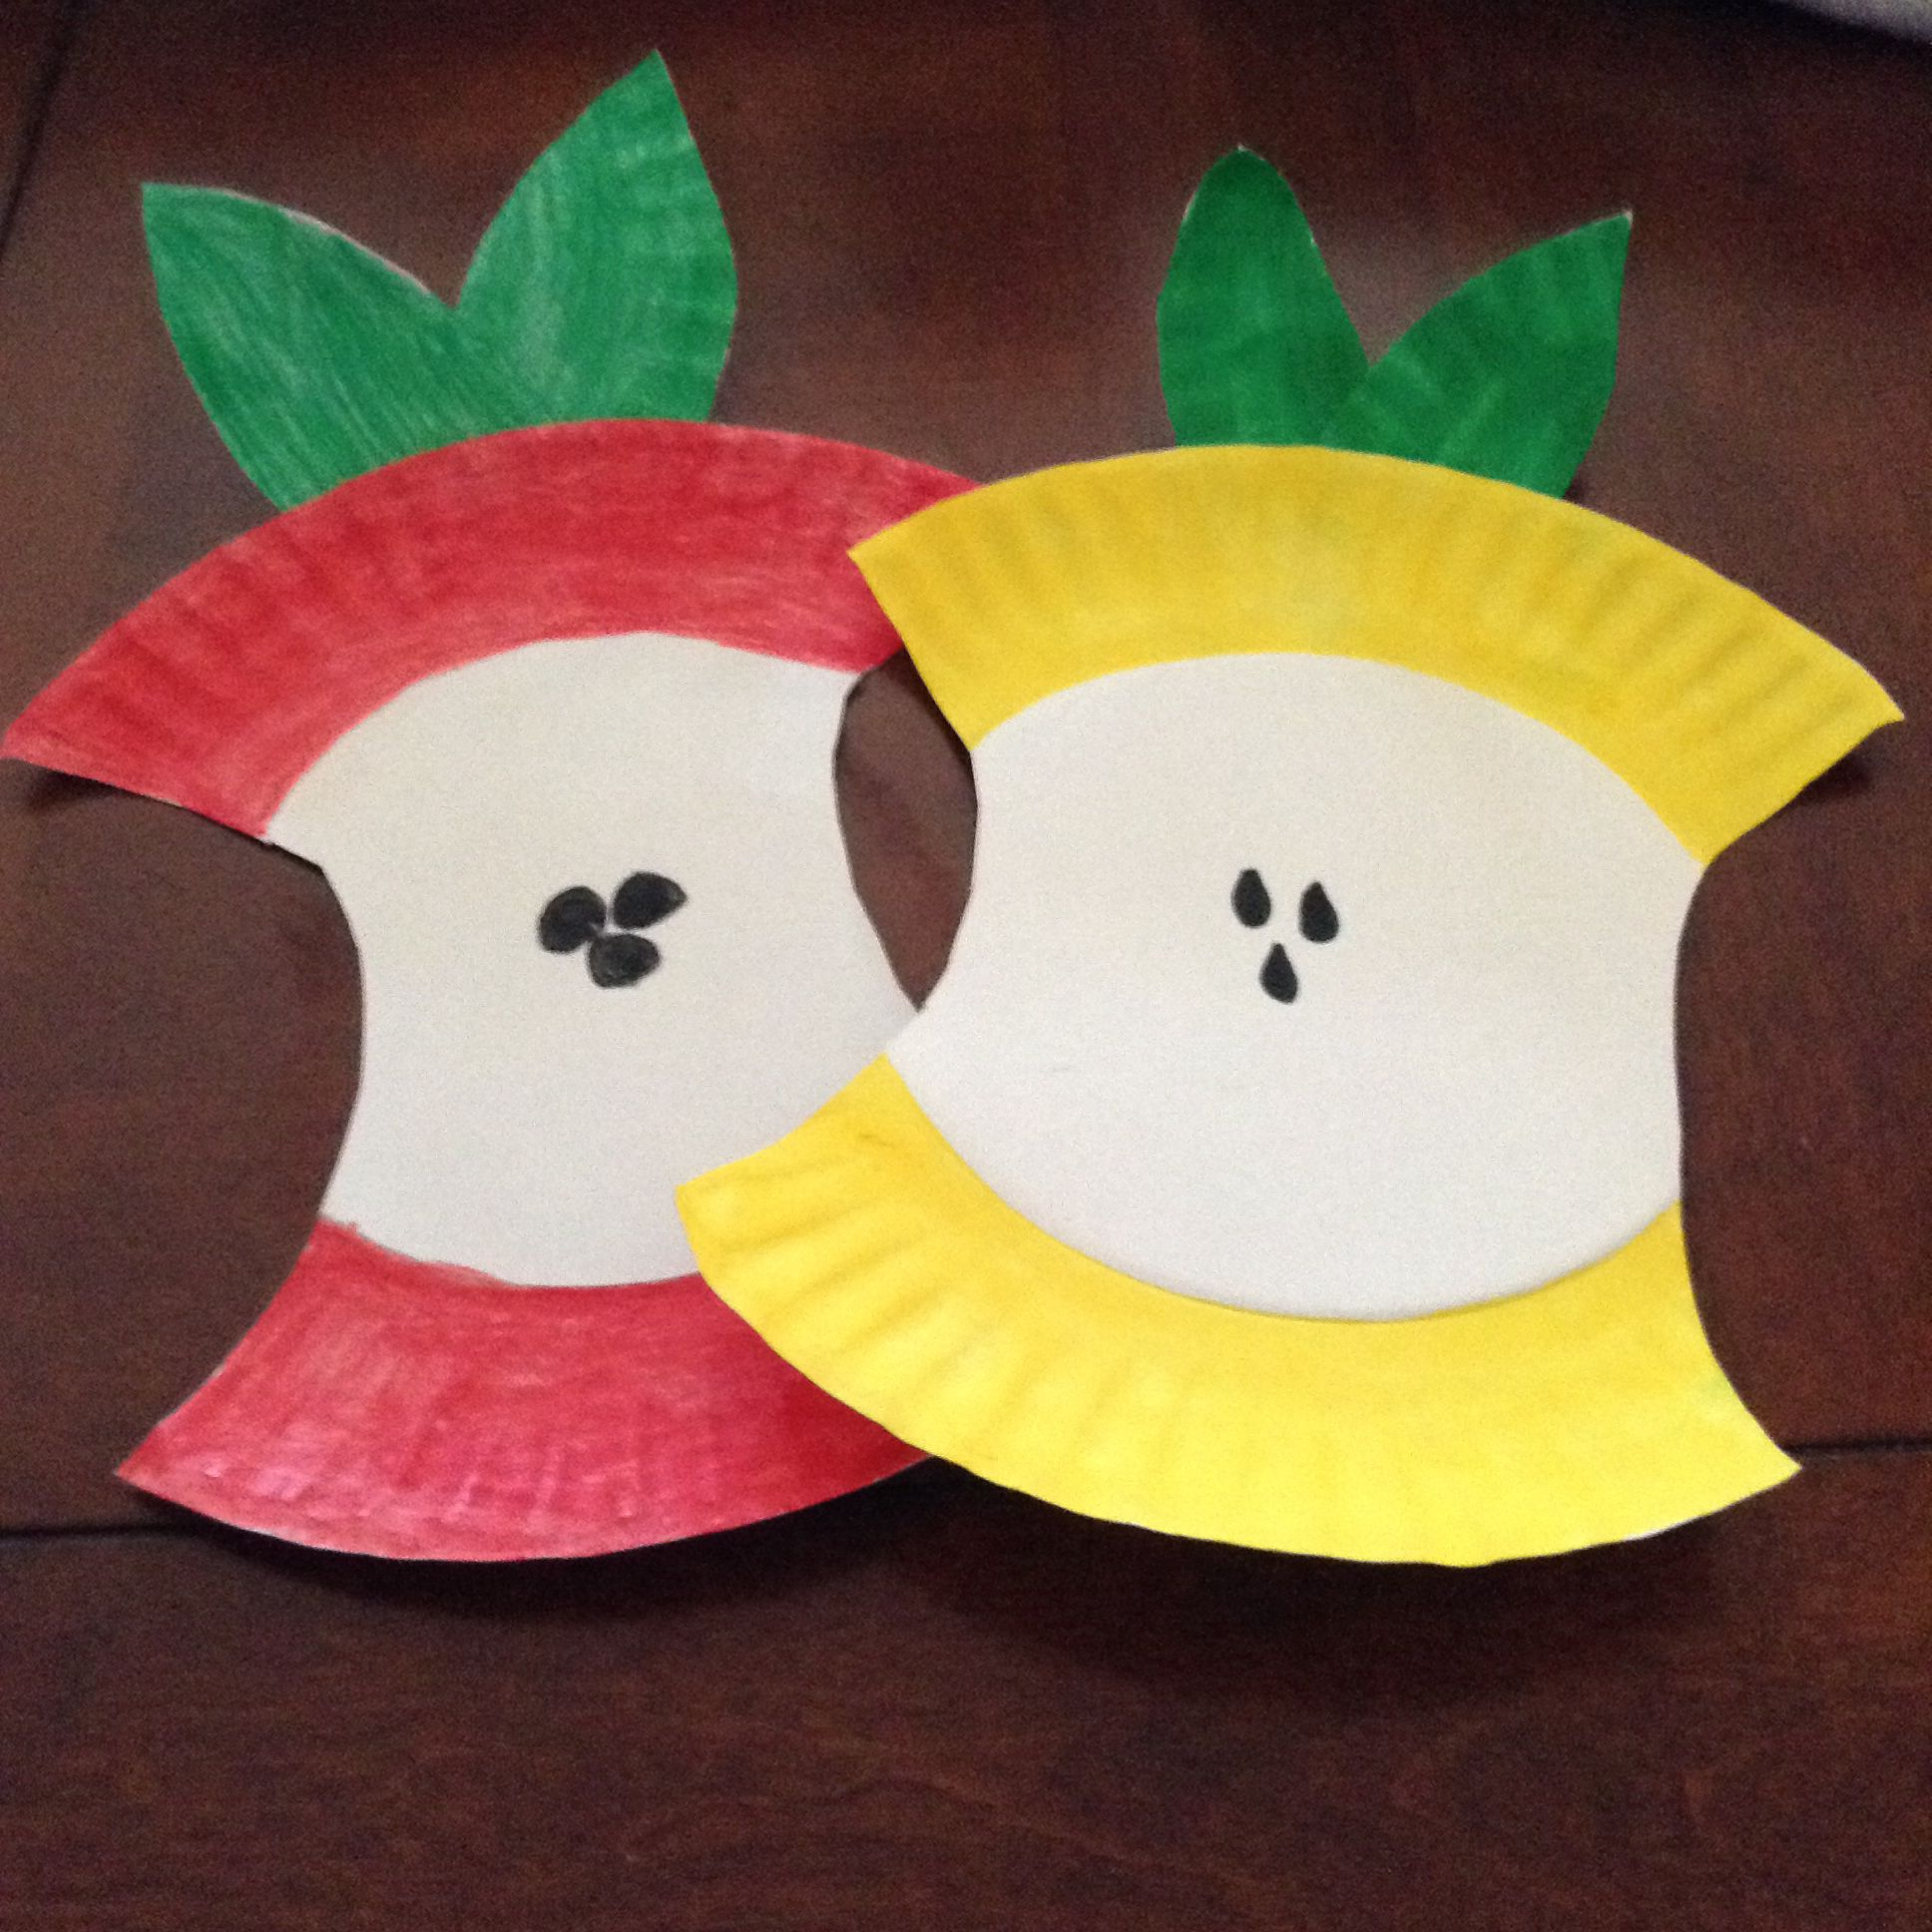 Apples we made for lesson on the fruits of the spirit